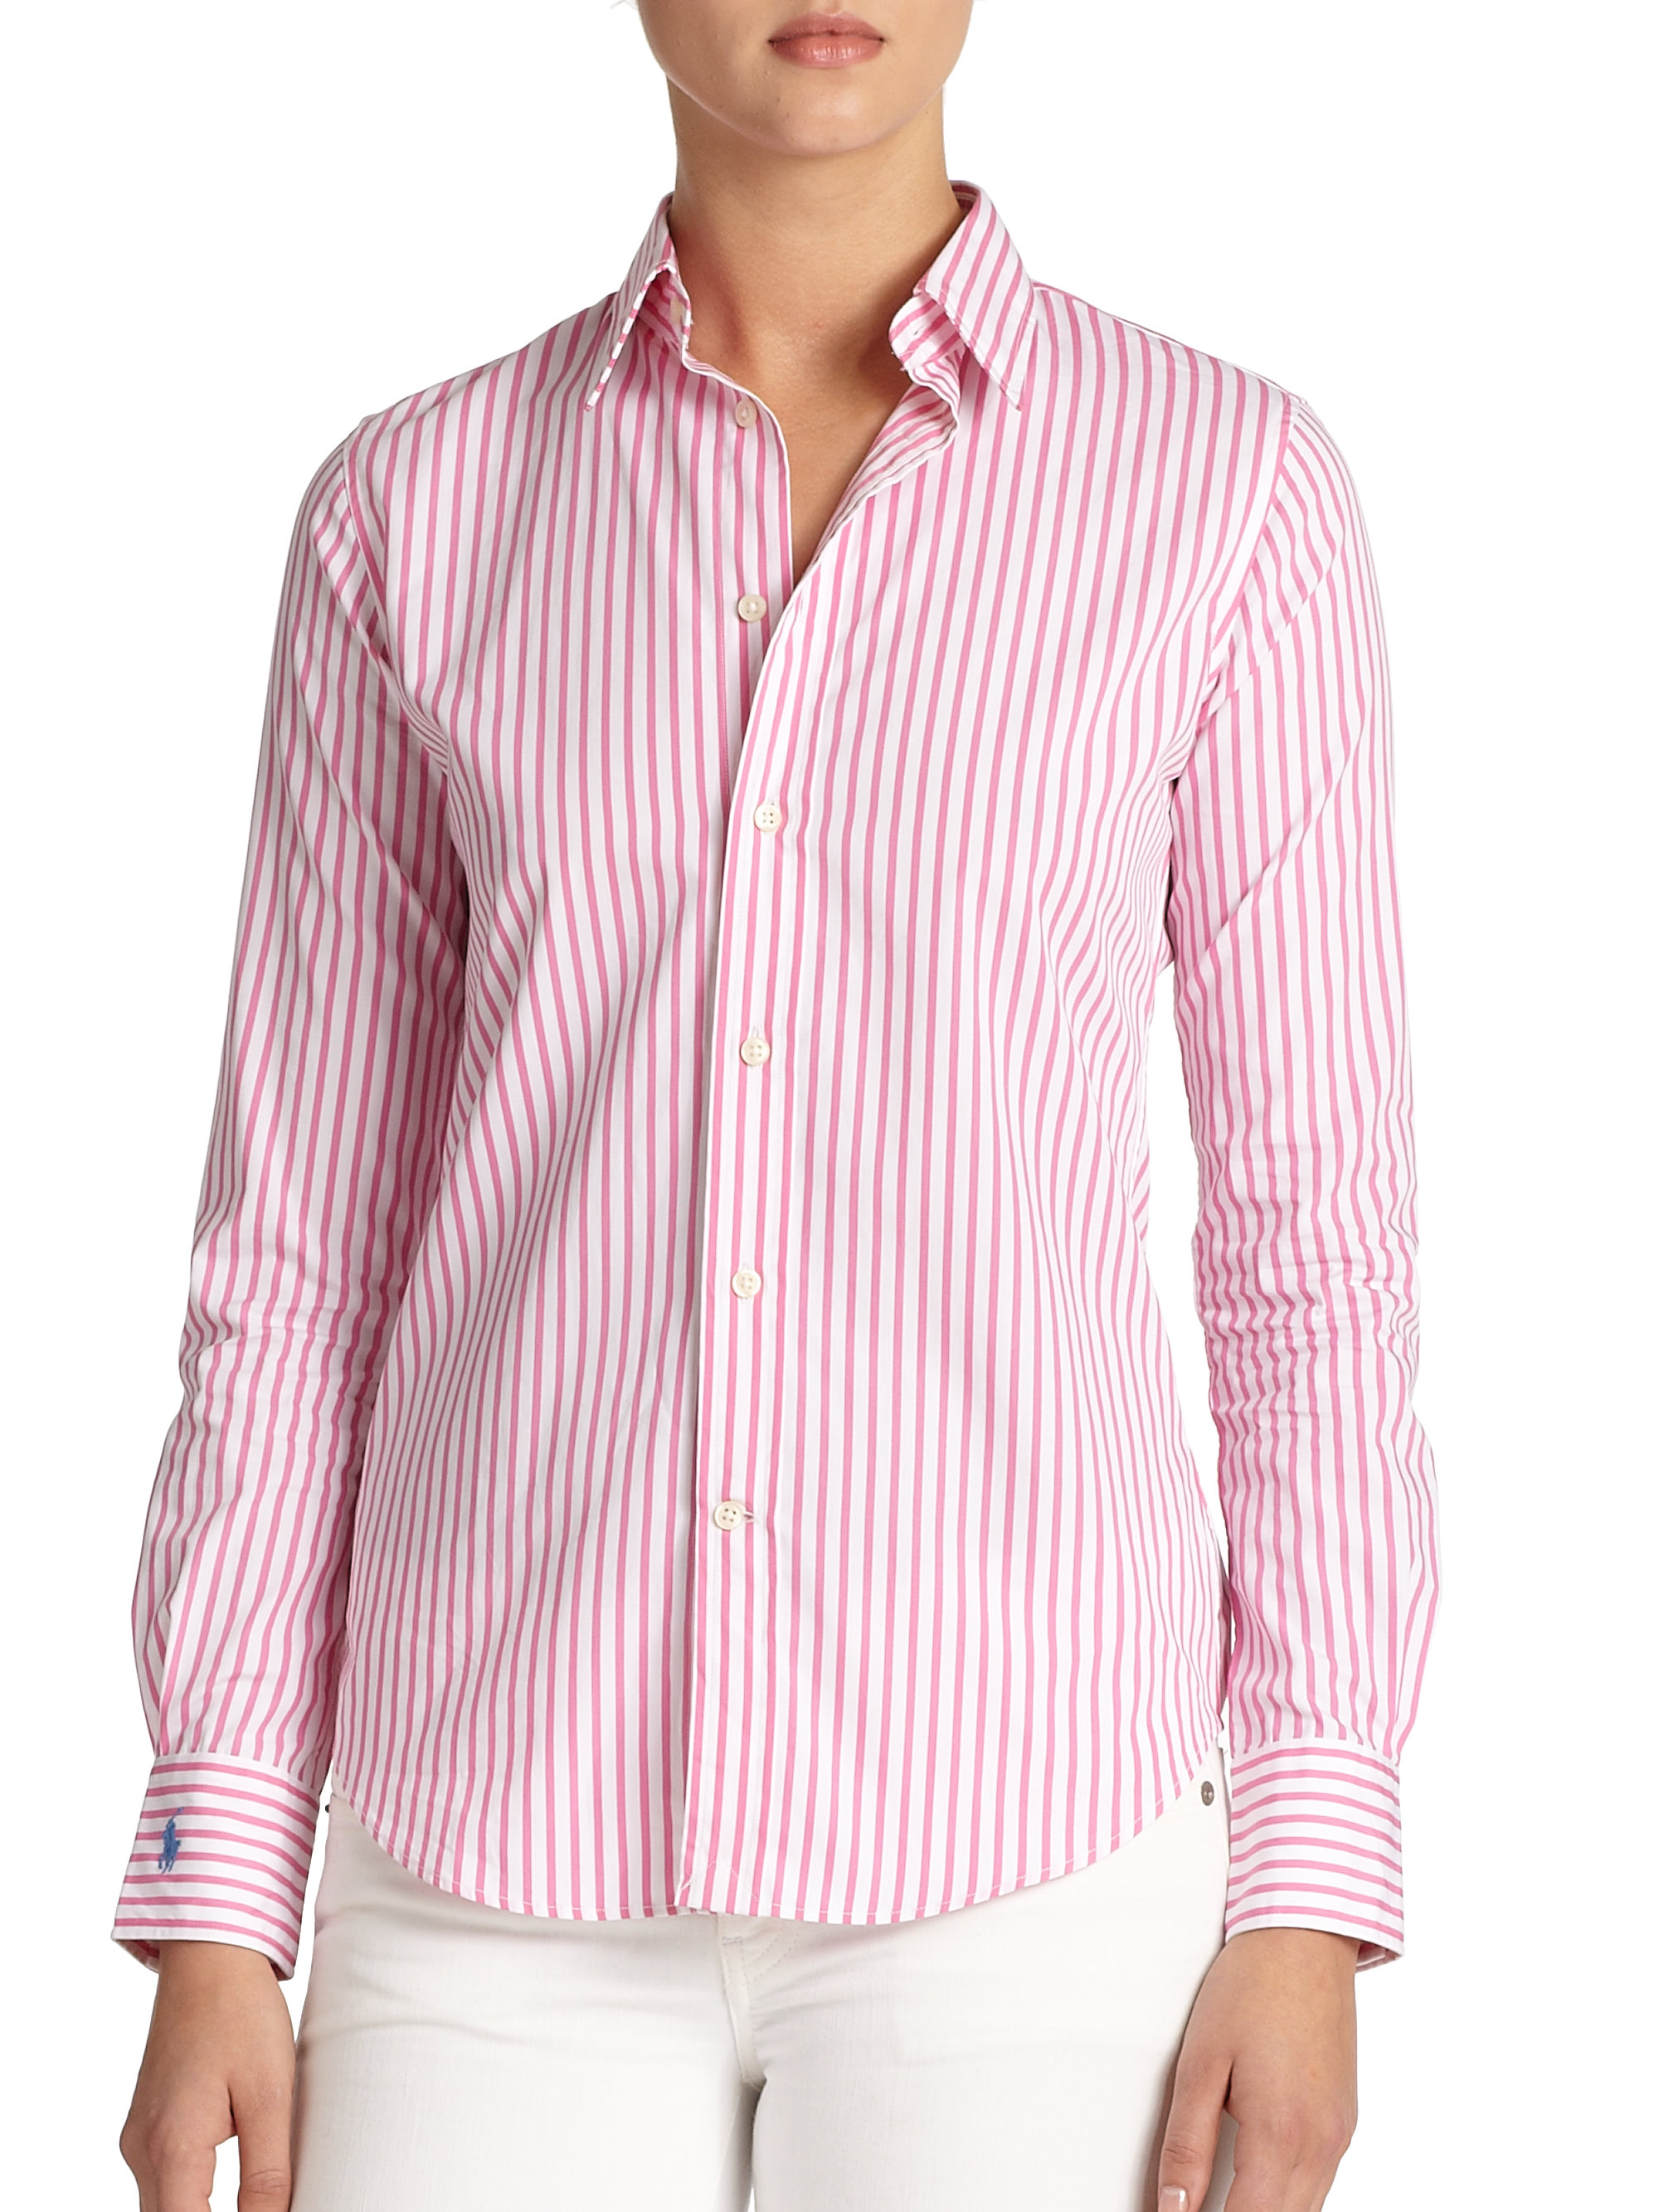 77c4bbcb53 Polo Ralph Lauren Poplin Bengal-Striped Shirt in Pink - Lyst